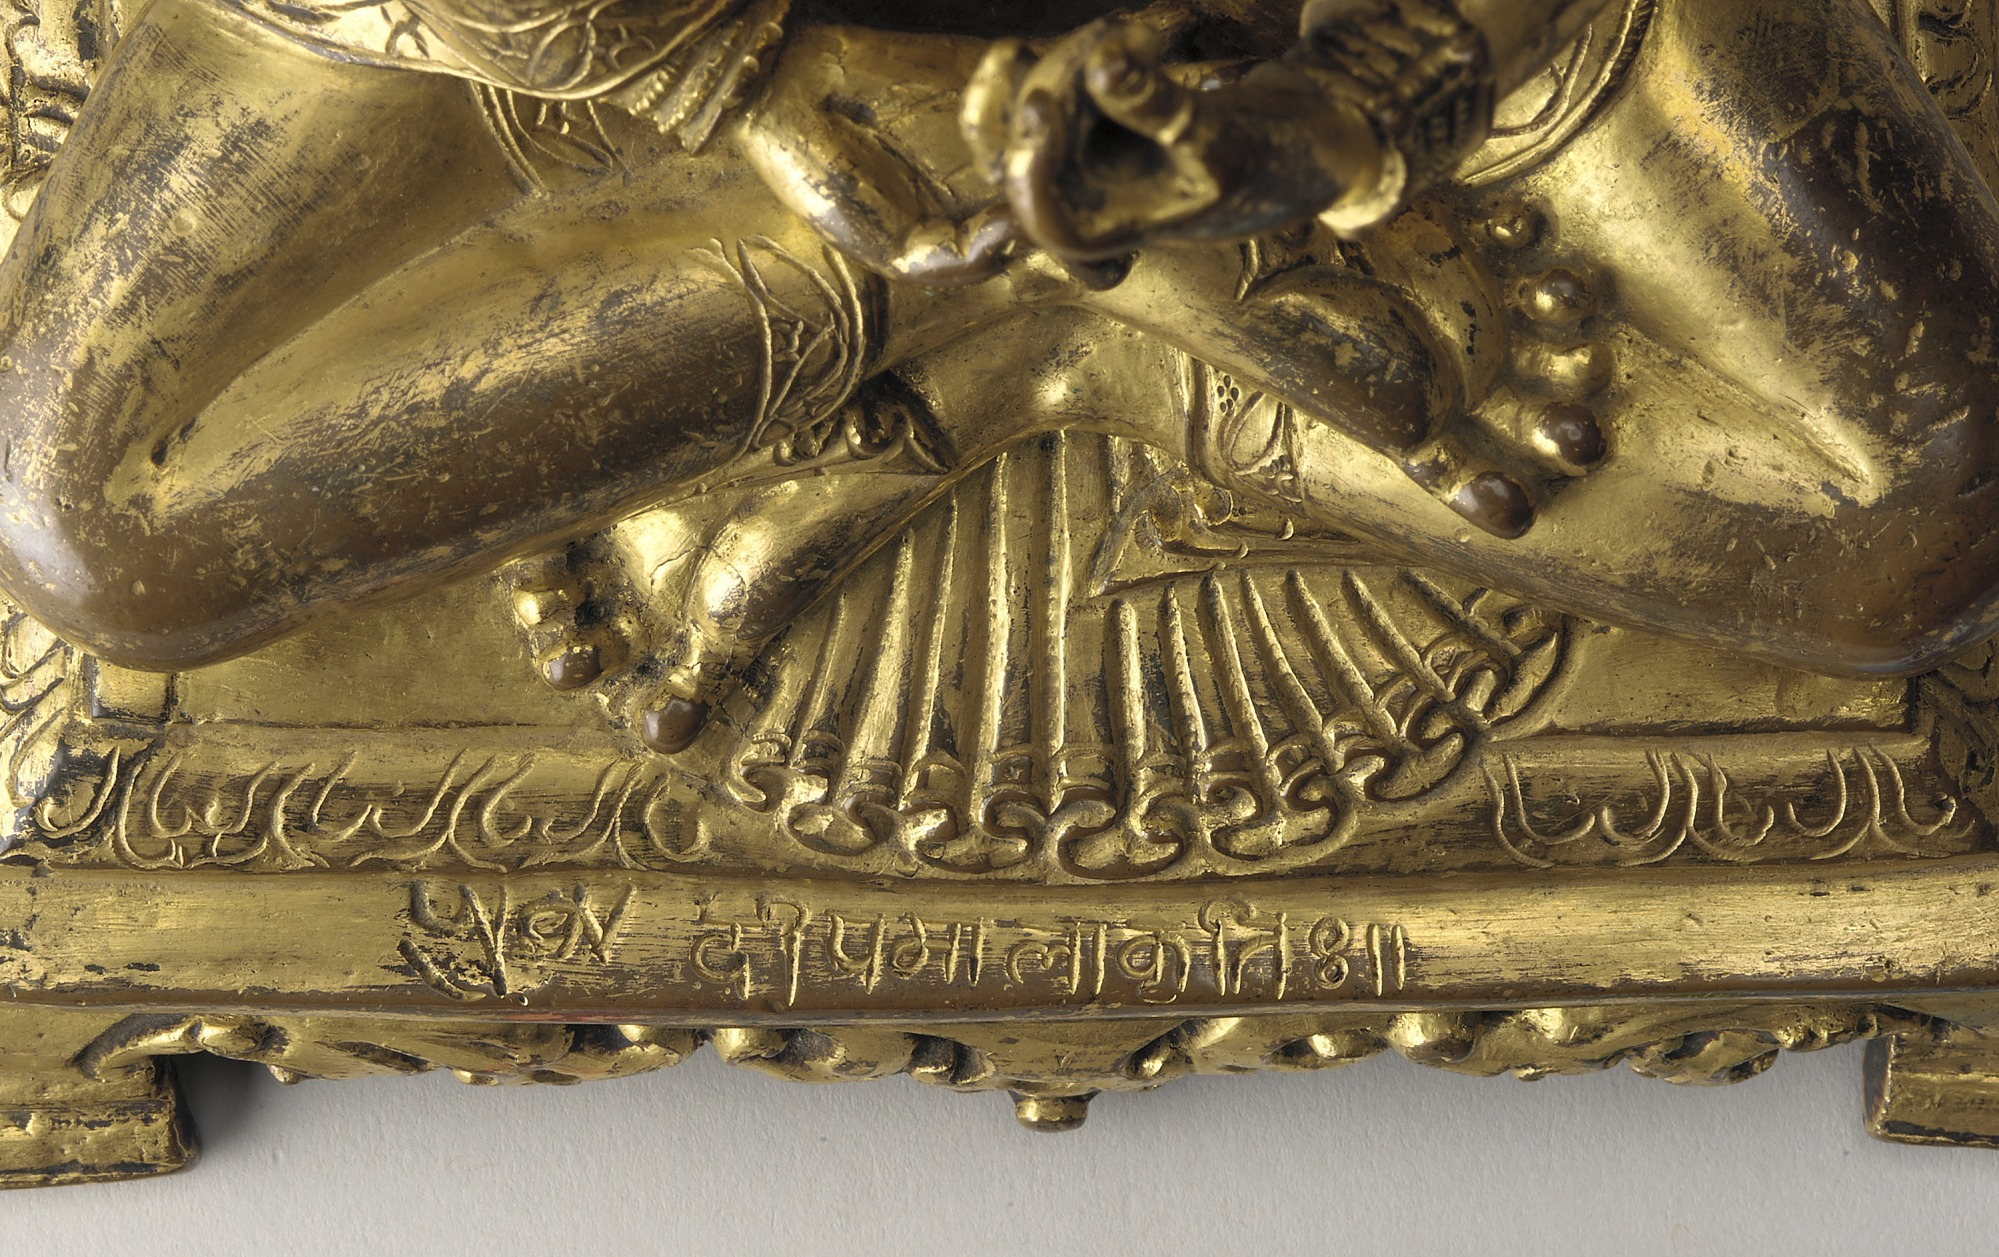 detail: Queen as the Goddess Prajnaparamita